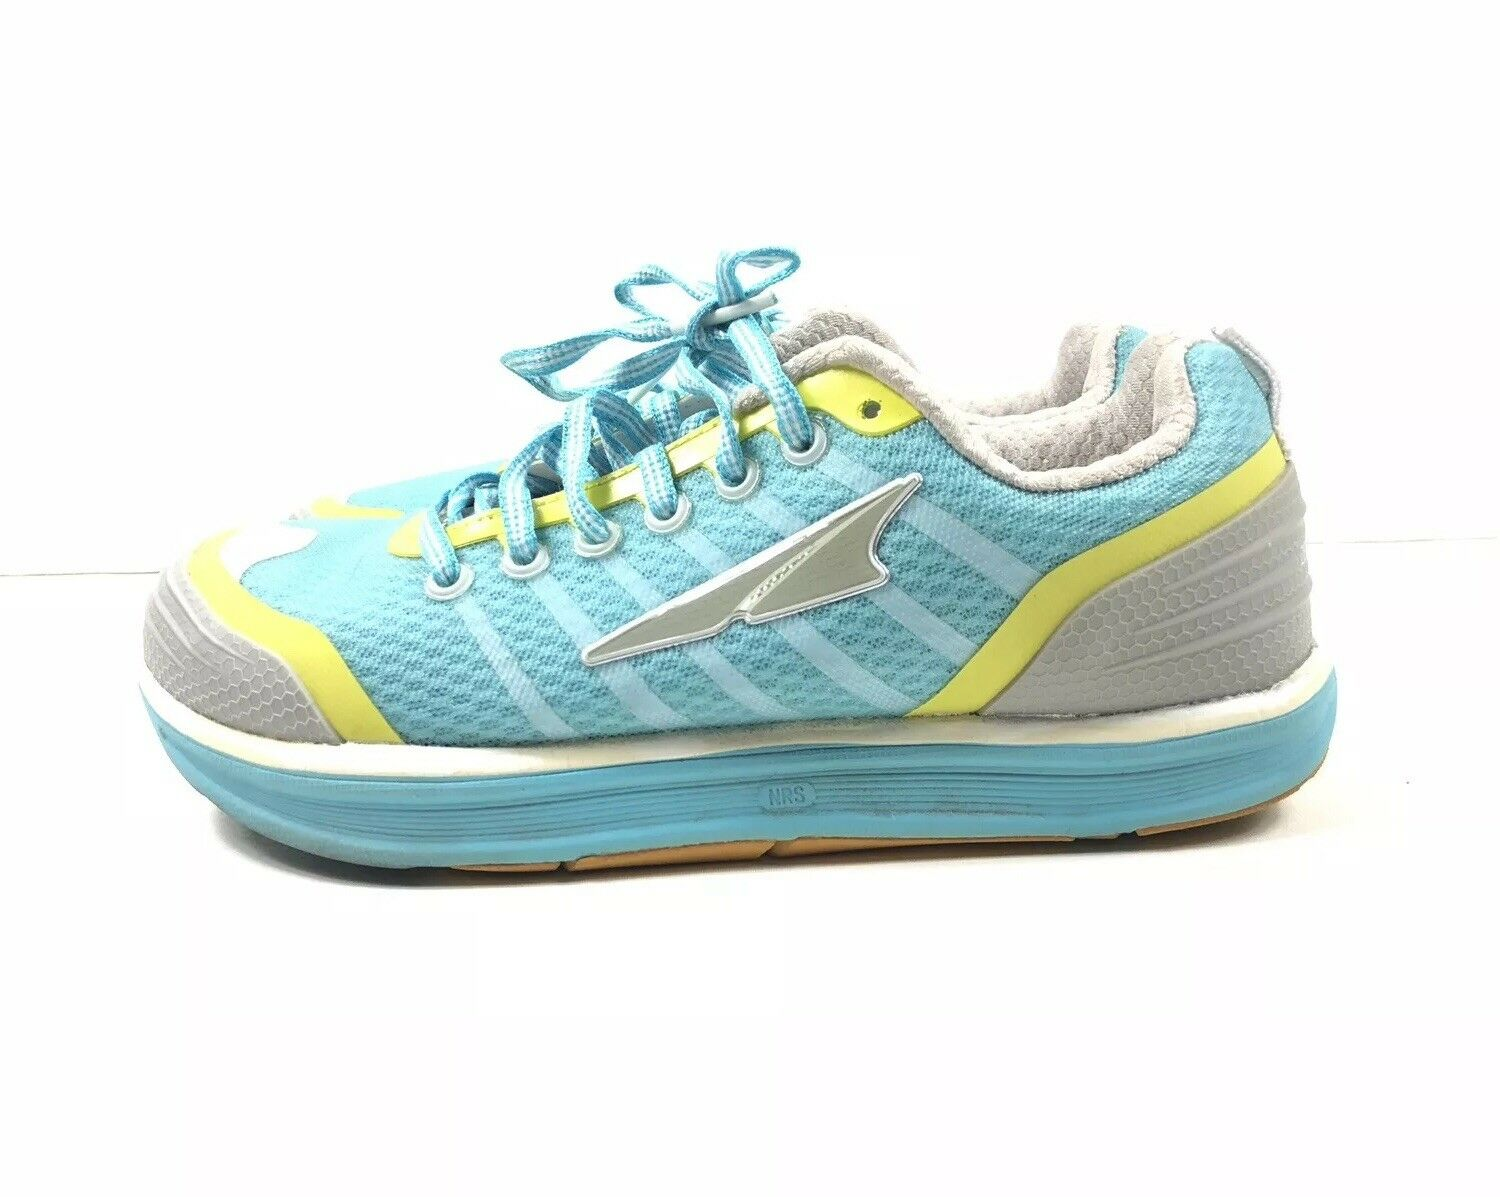 Altra Women's Intuition 2 bluee Yellow shoes Size 7.5